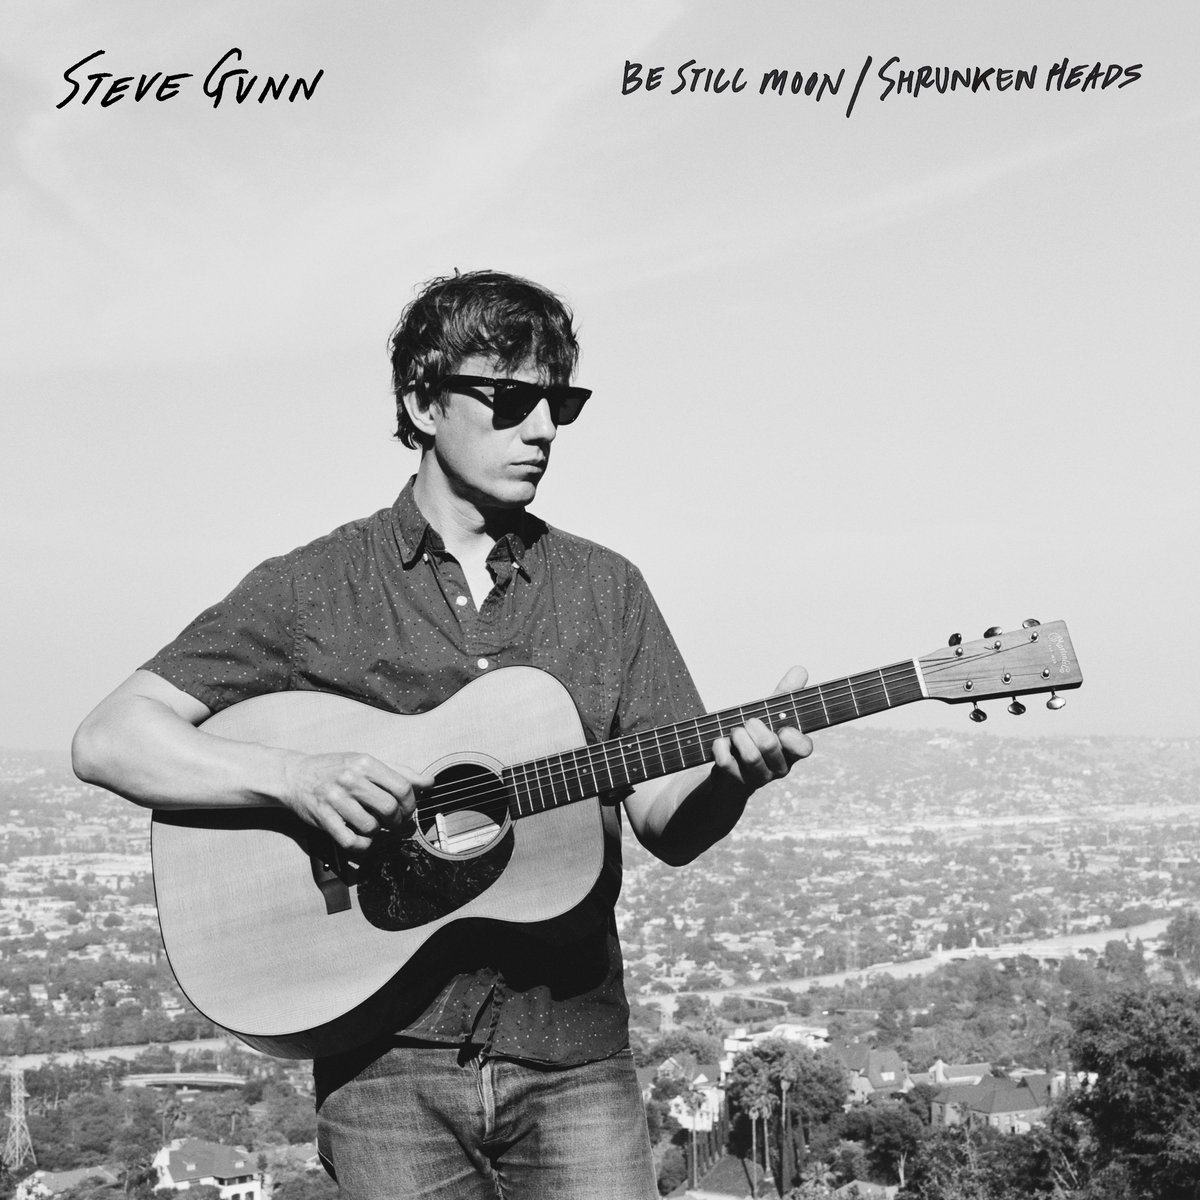 News – Steve Gunn – Be Still Moon / Shrunken Heads